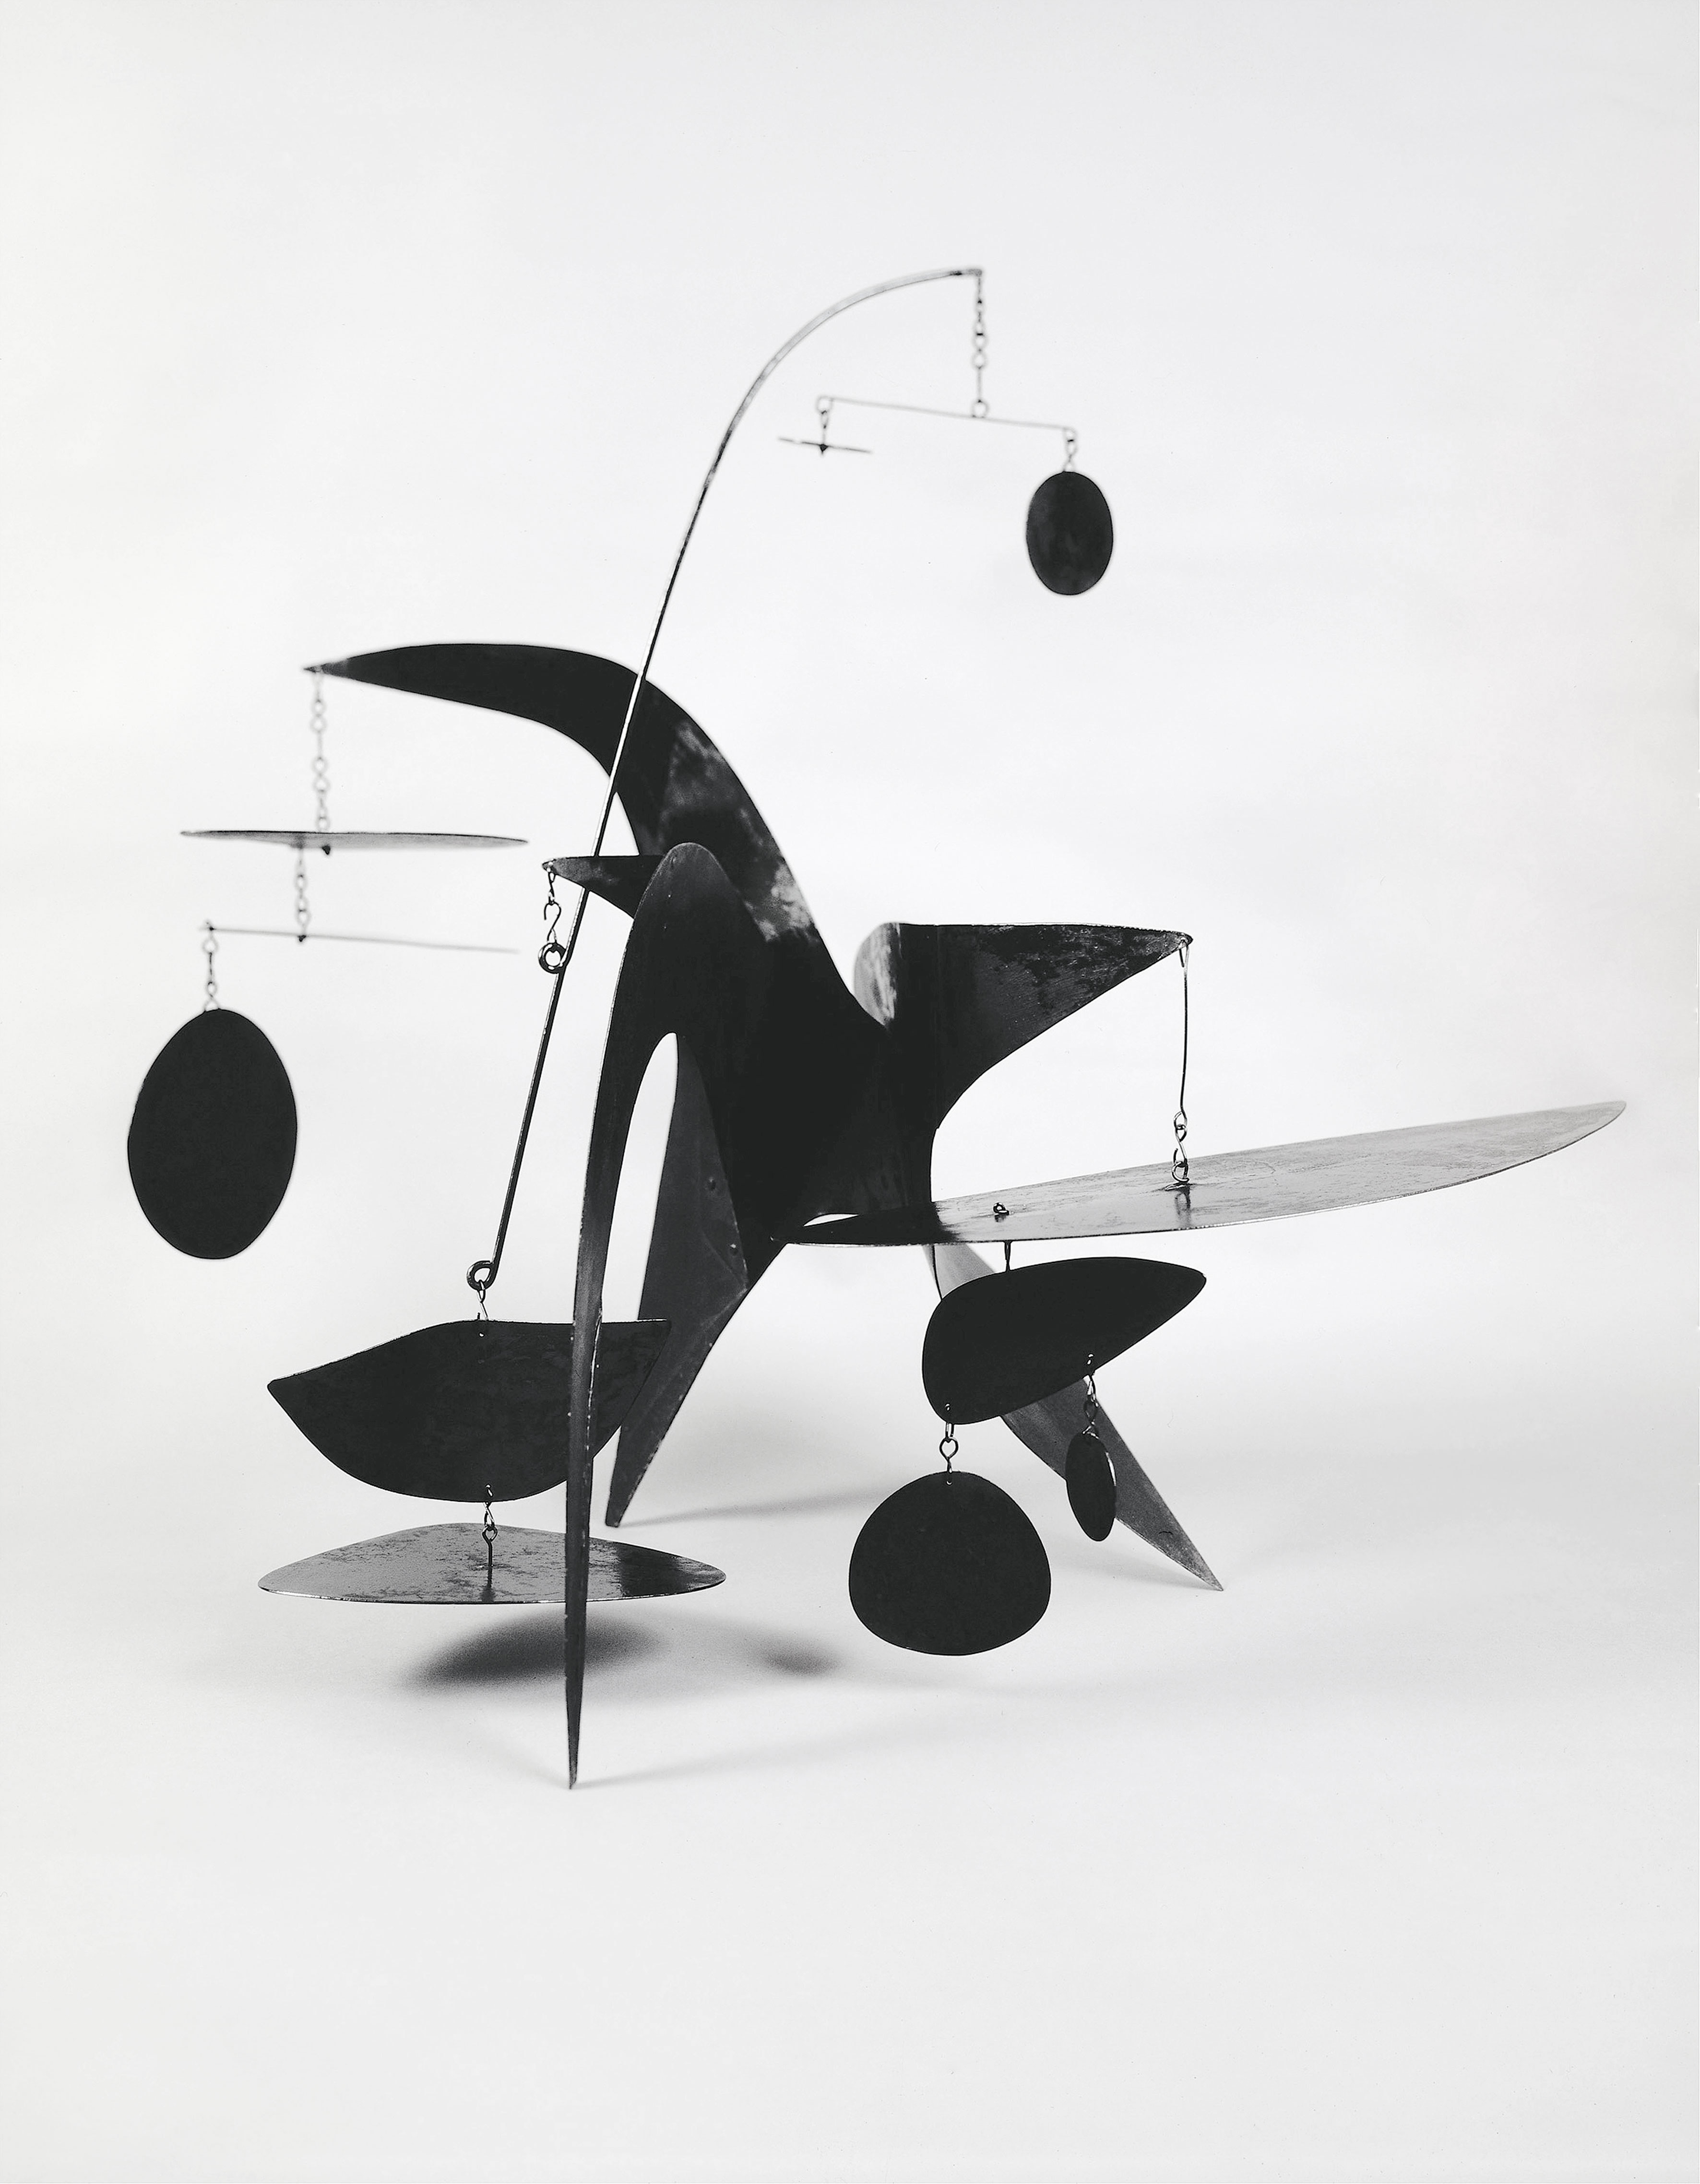 Alexander Calder, The General Sherman, 1945; Metallblech, Rundstab und Draht, bemalt; 81,3 x 111,8 x 58,4 cm; Julie und Edward J. Minskoff; © 2016 Calder Foundation, New York / ProLitteris, Zürich